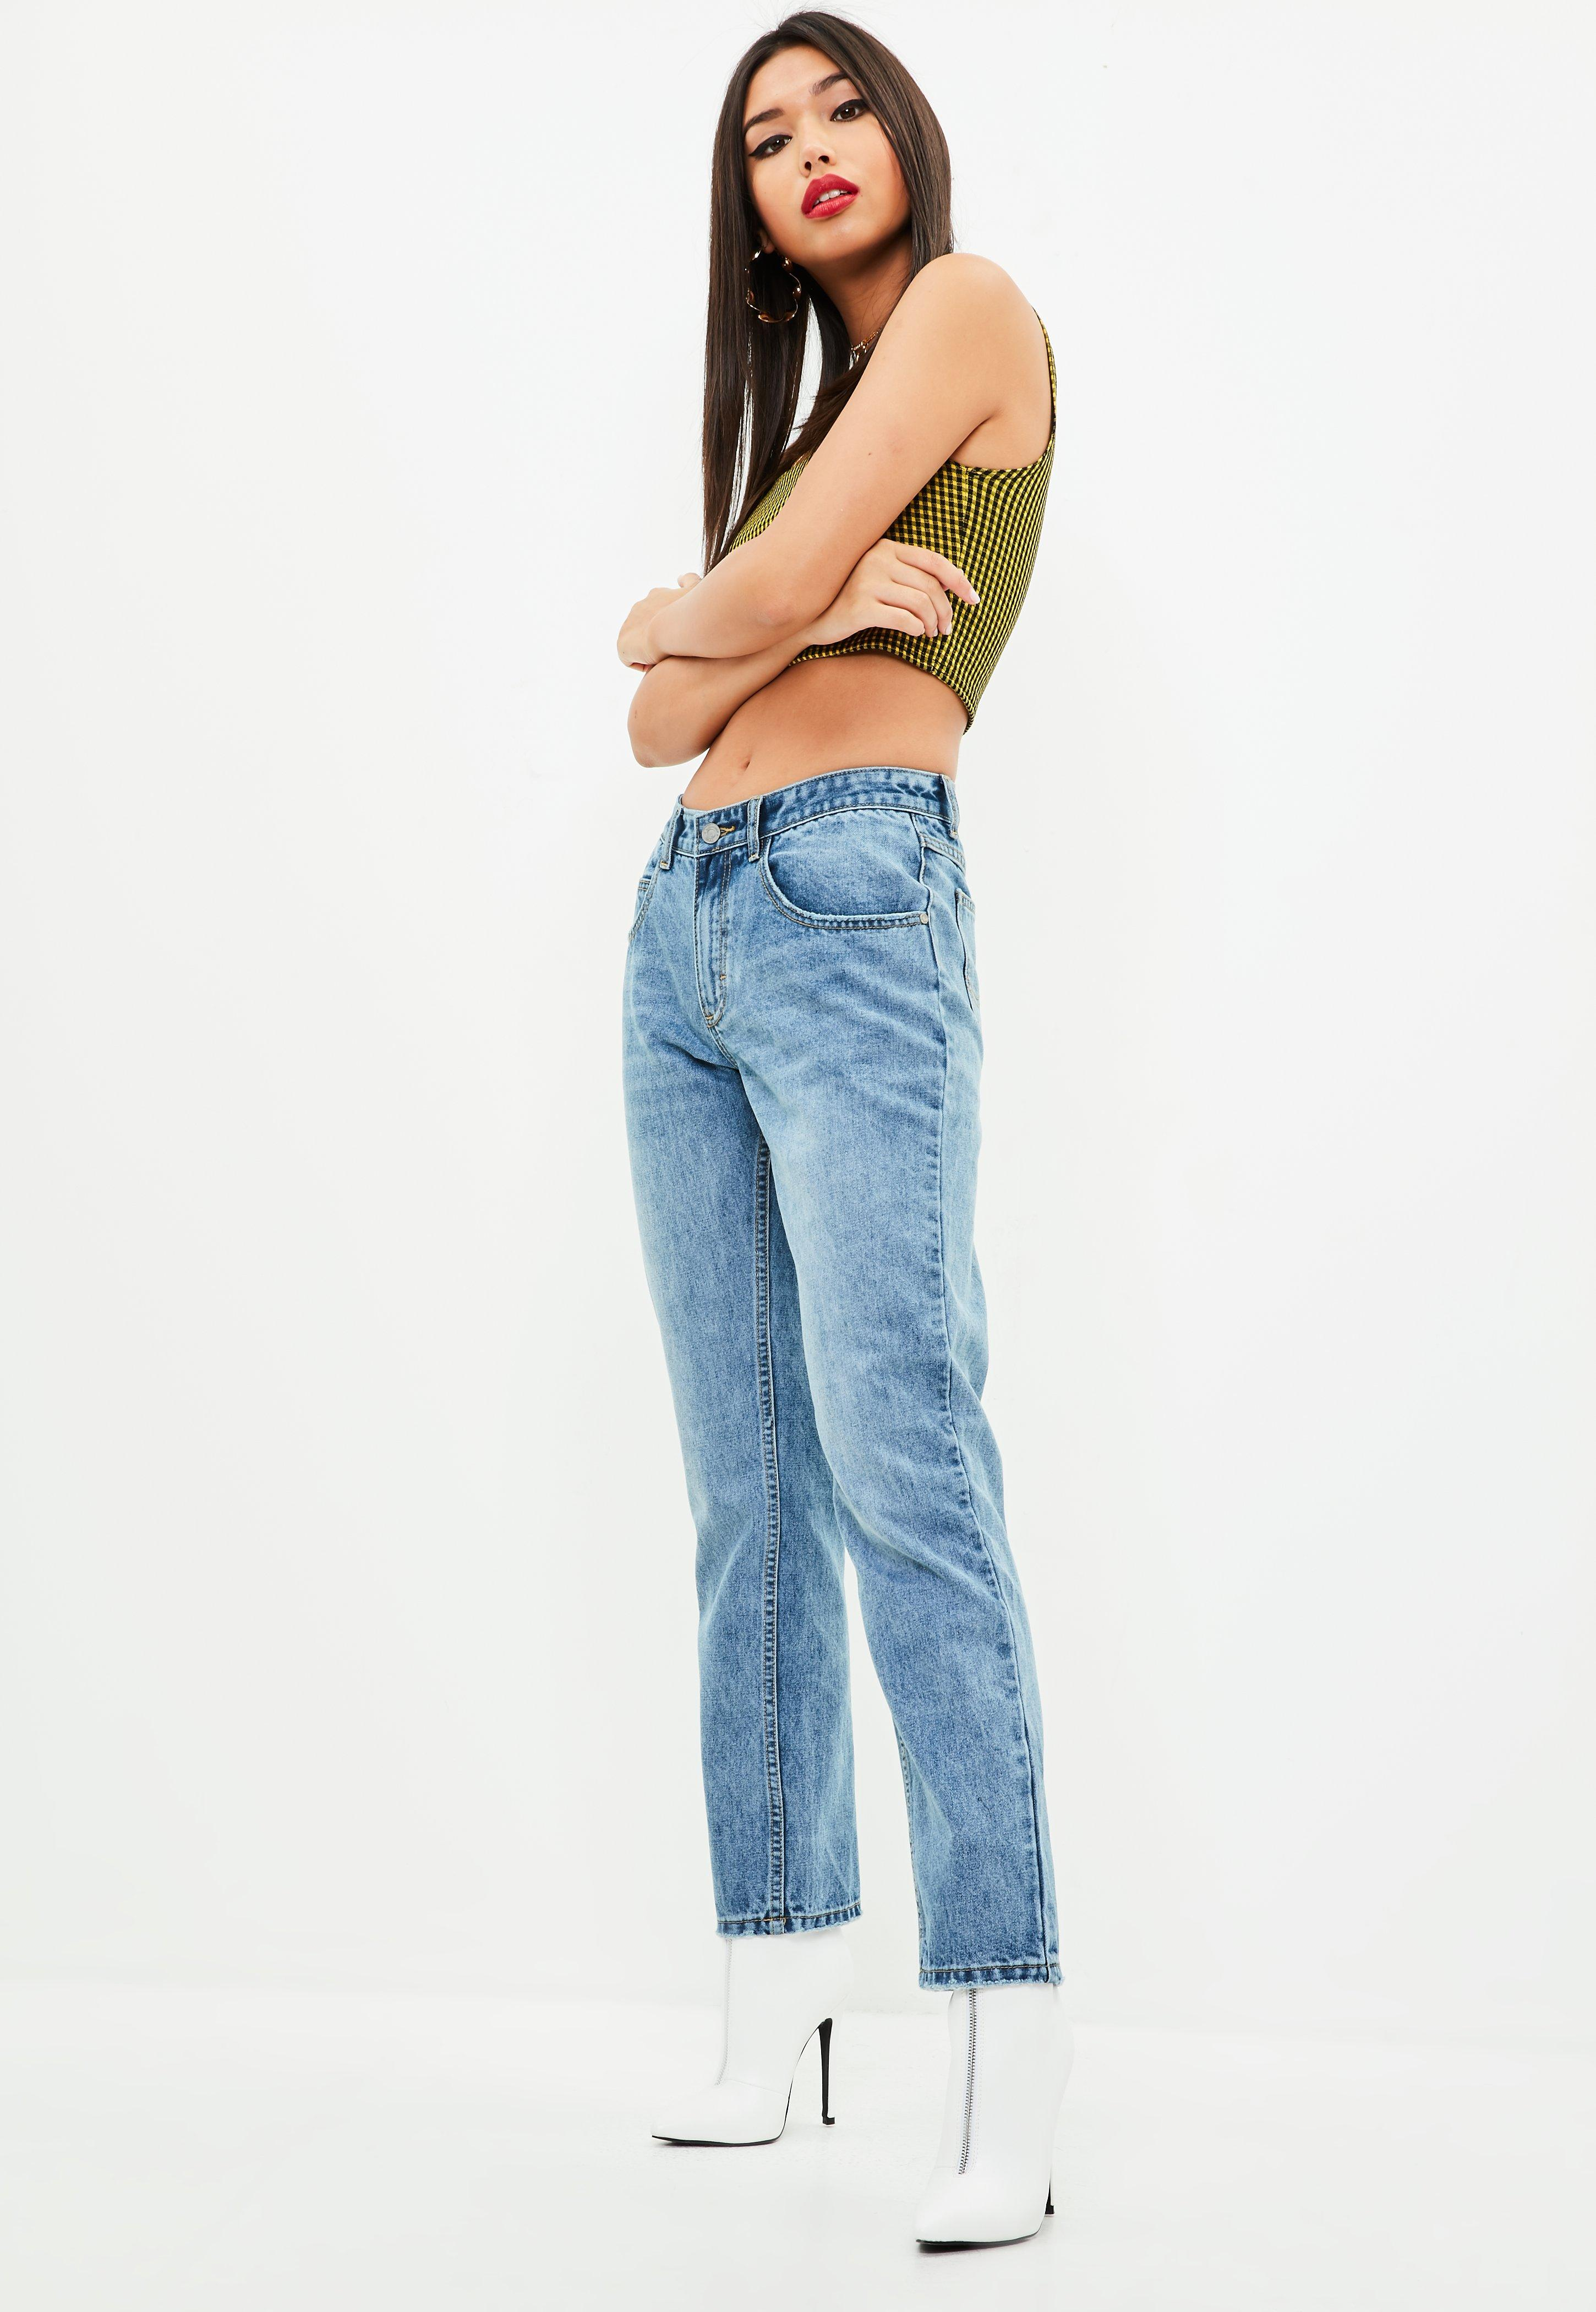 Cheap Clothes Online - Women\'s Sale Clothing | Missguided